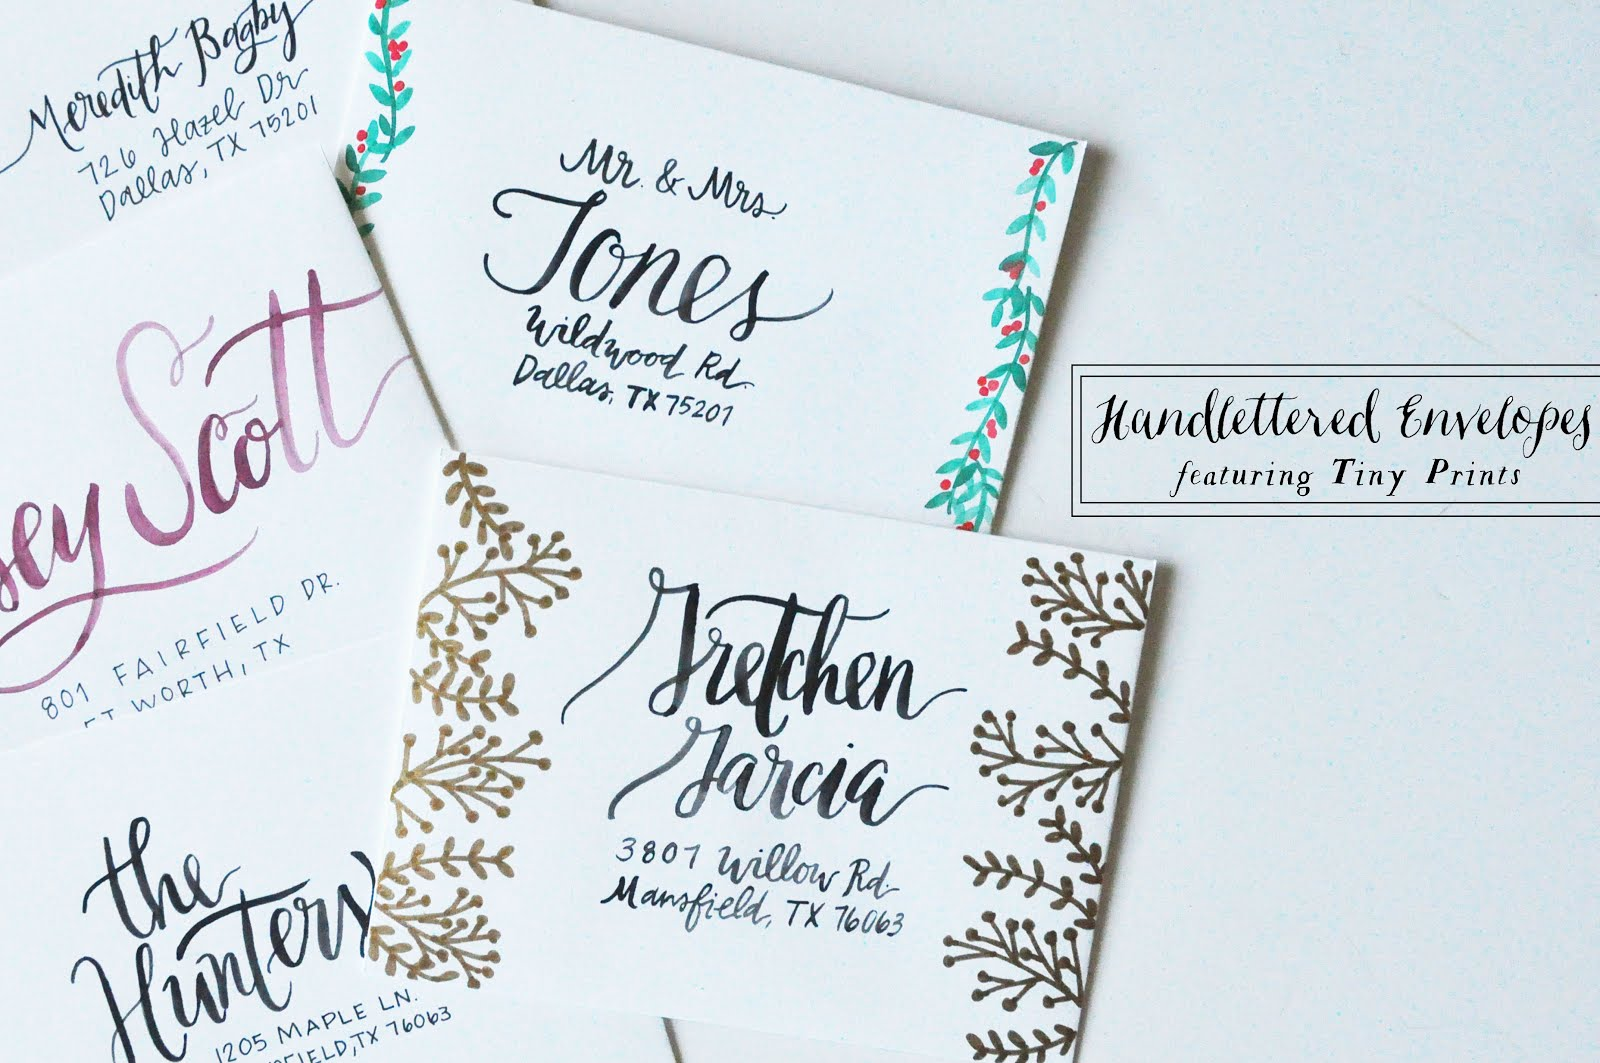 Pie N\' the Sky: Hand Lettered Envelopes | featuring Tiny Prints